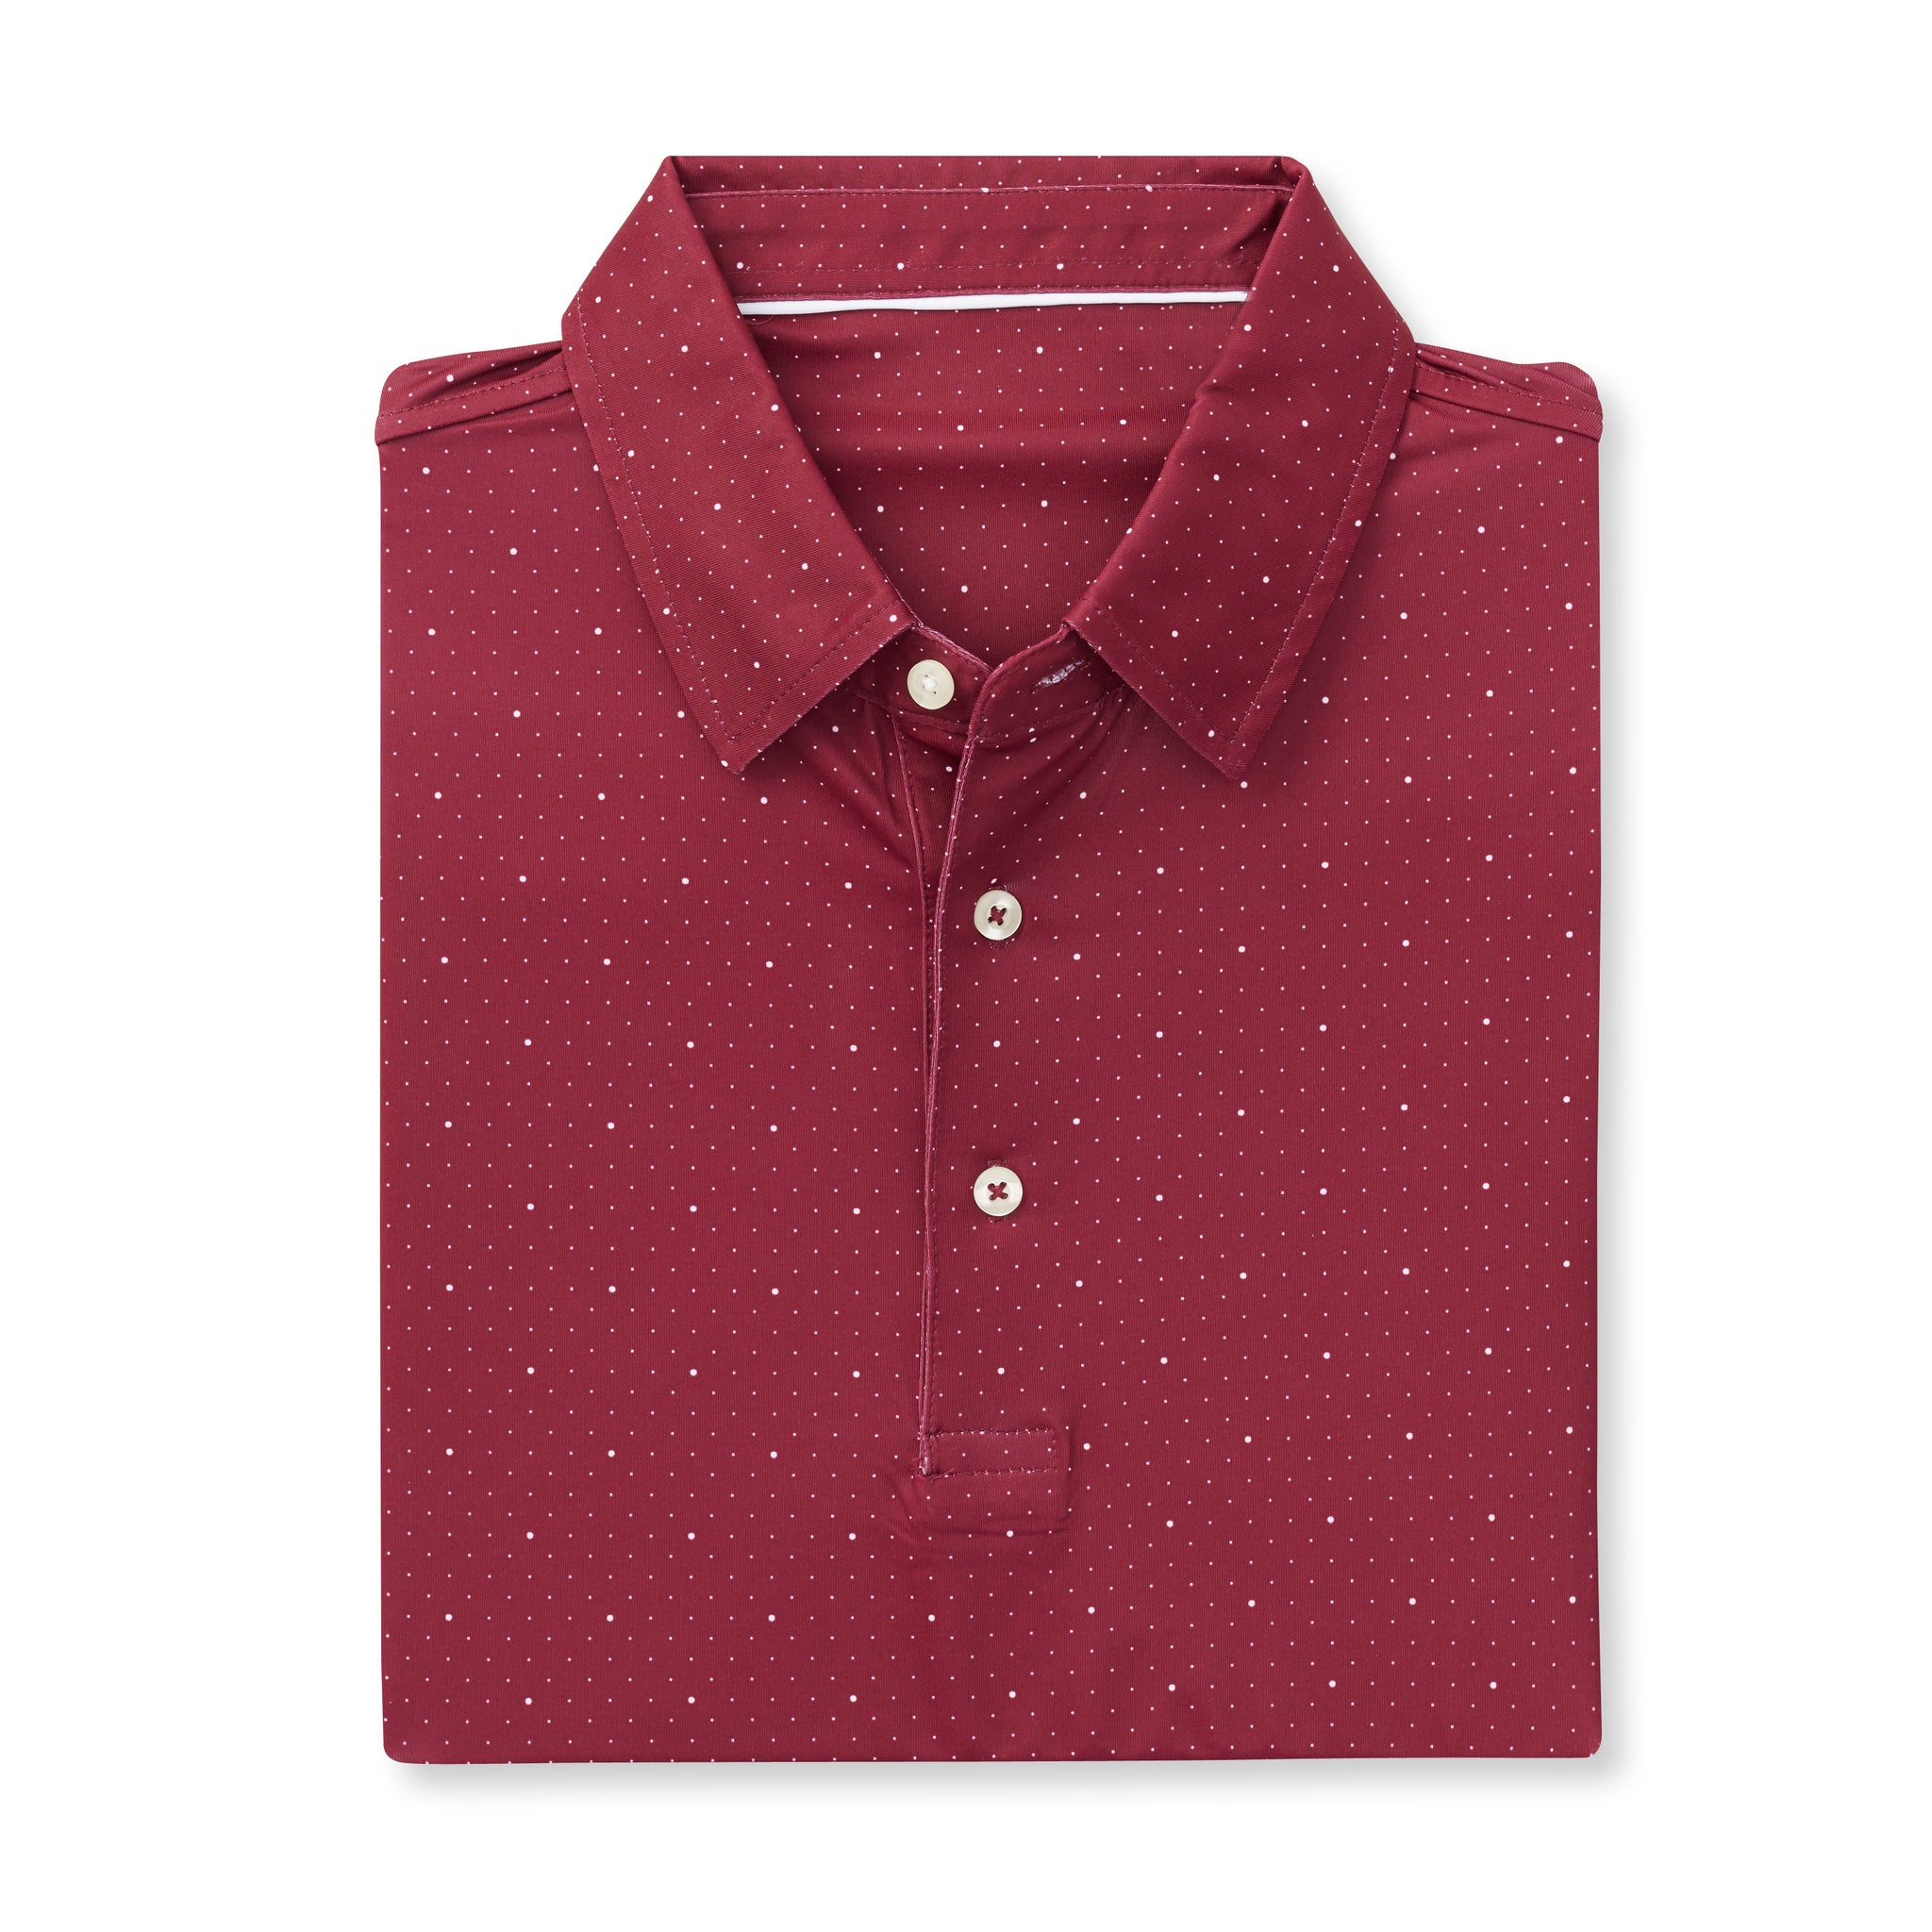 ECOTEC Short Sleeve Dual Dot Polo - Merlot/White IS76803